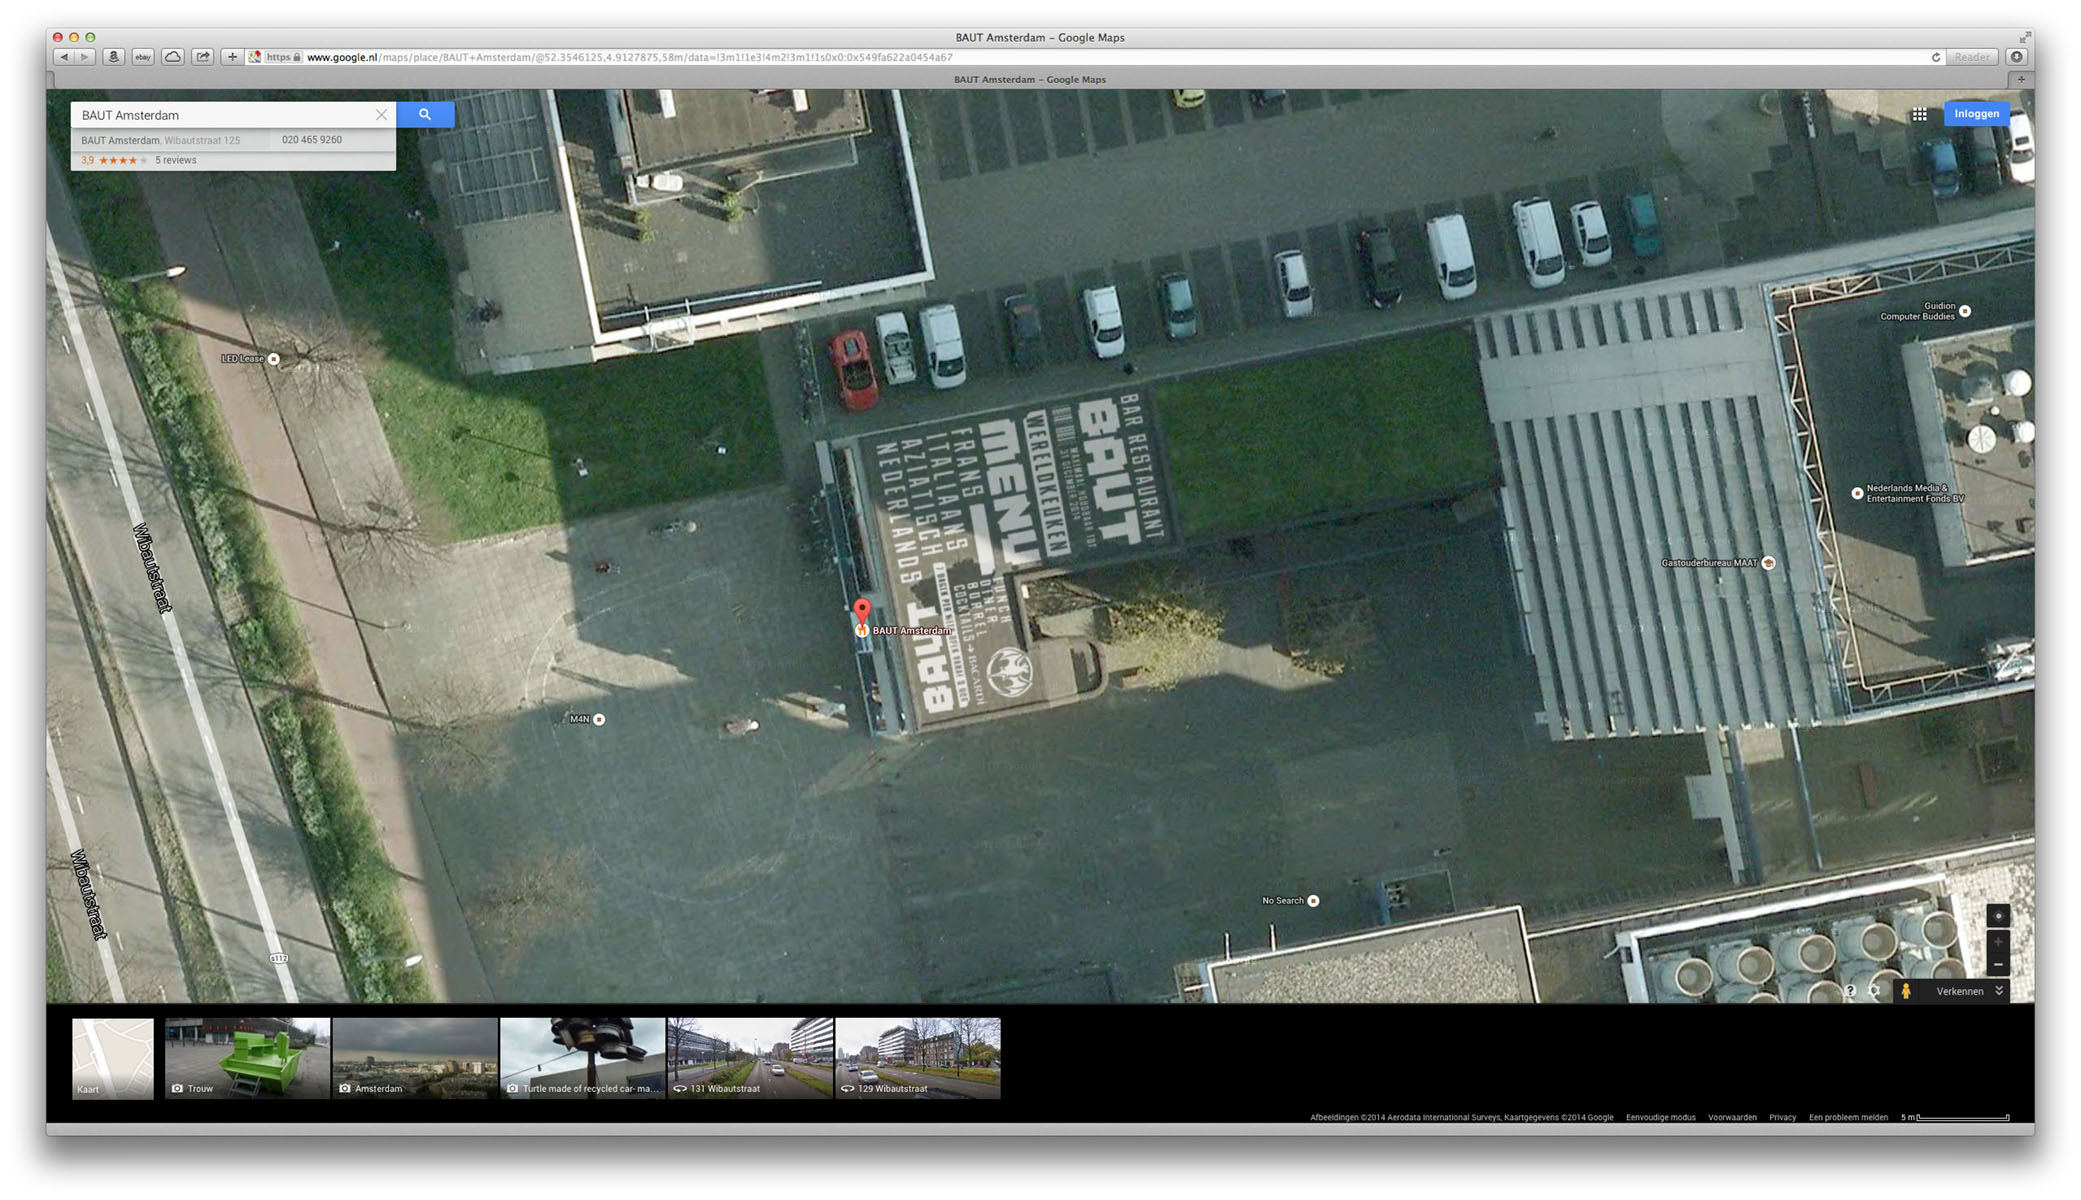 Roof paint on Google satellite